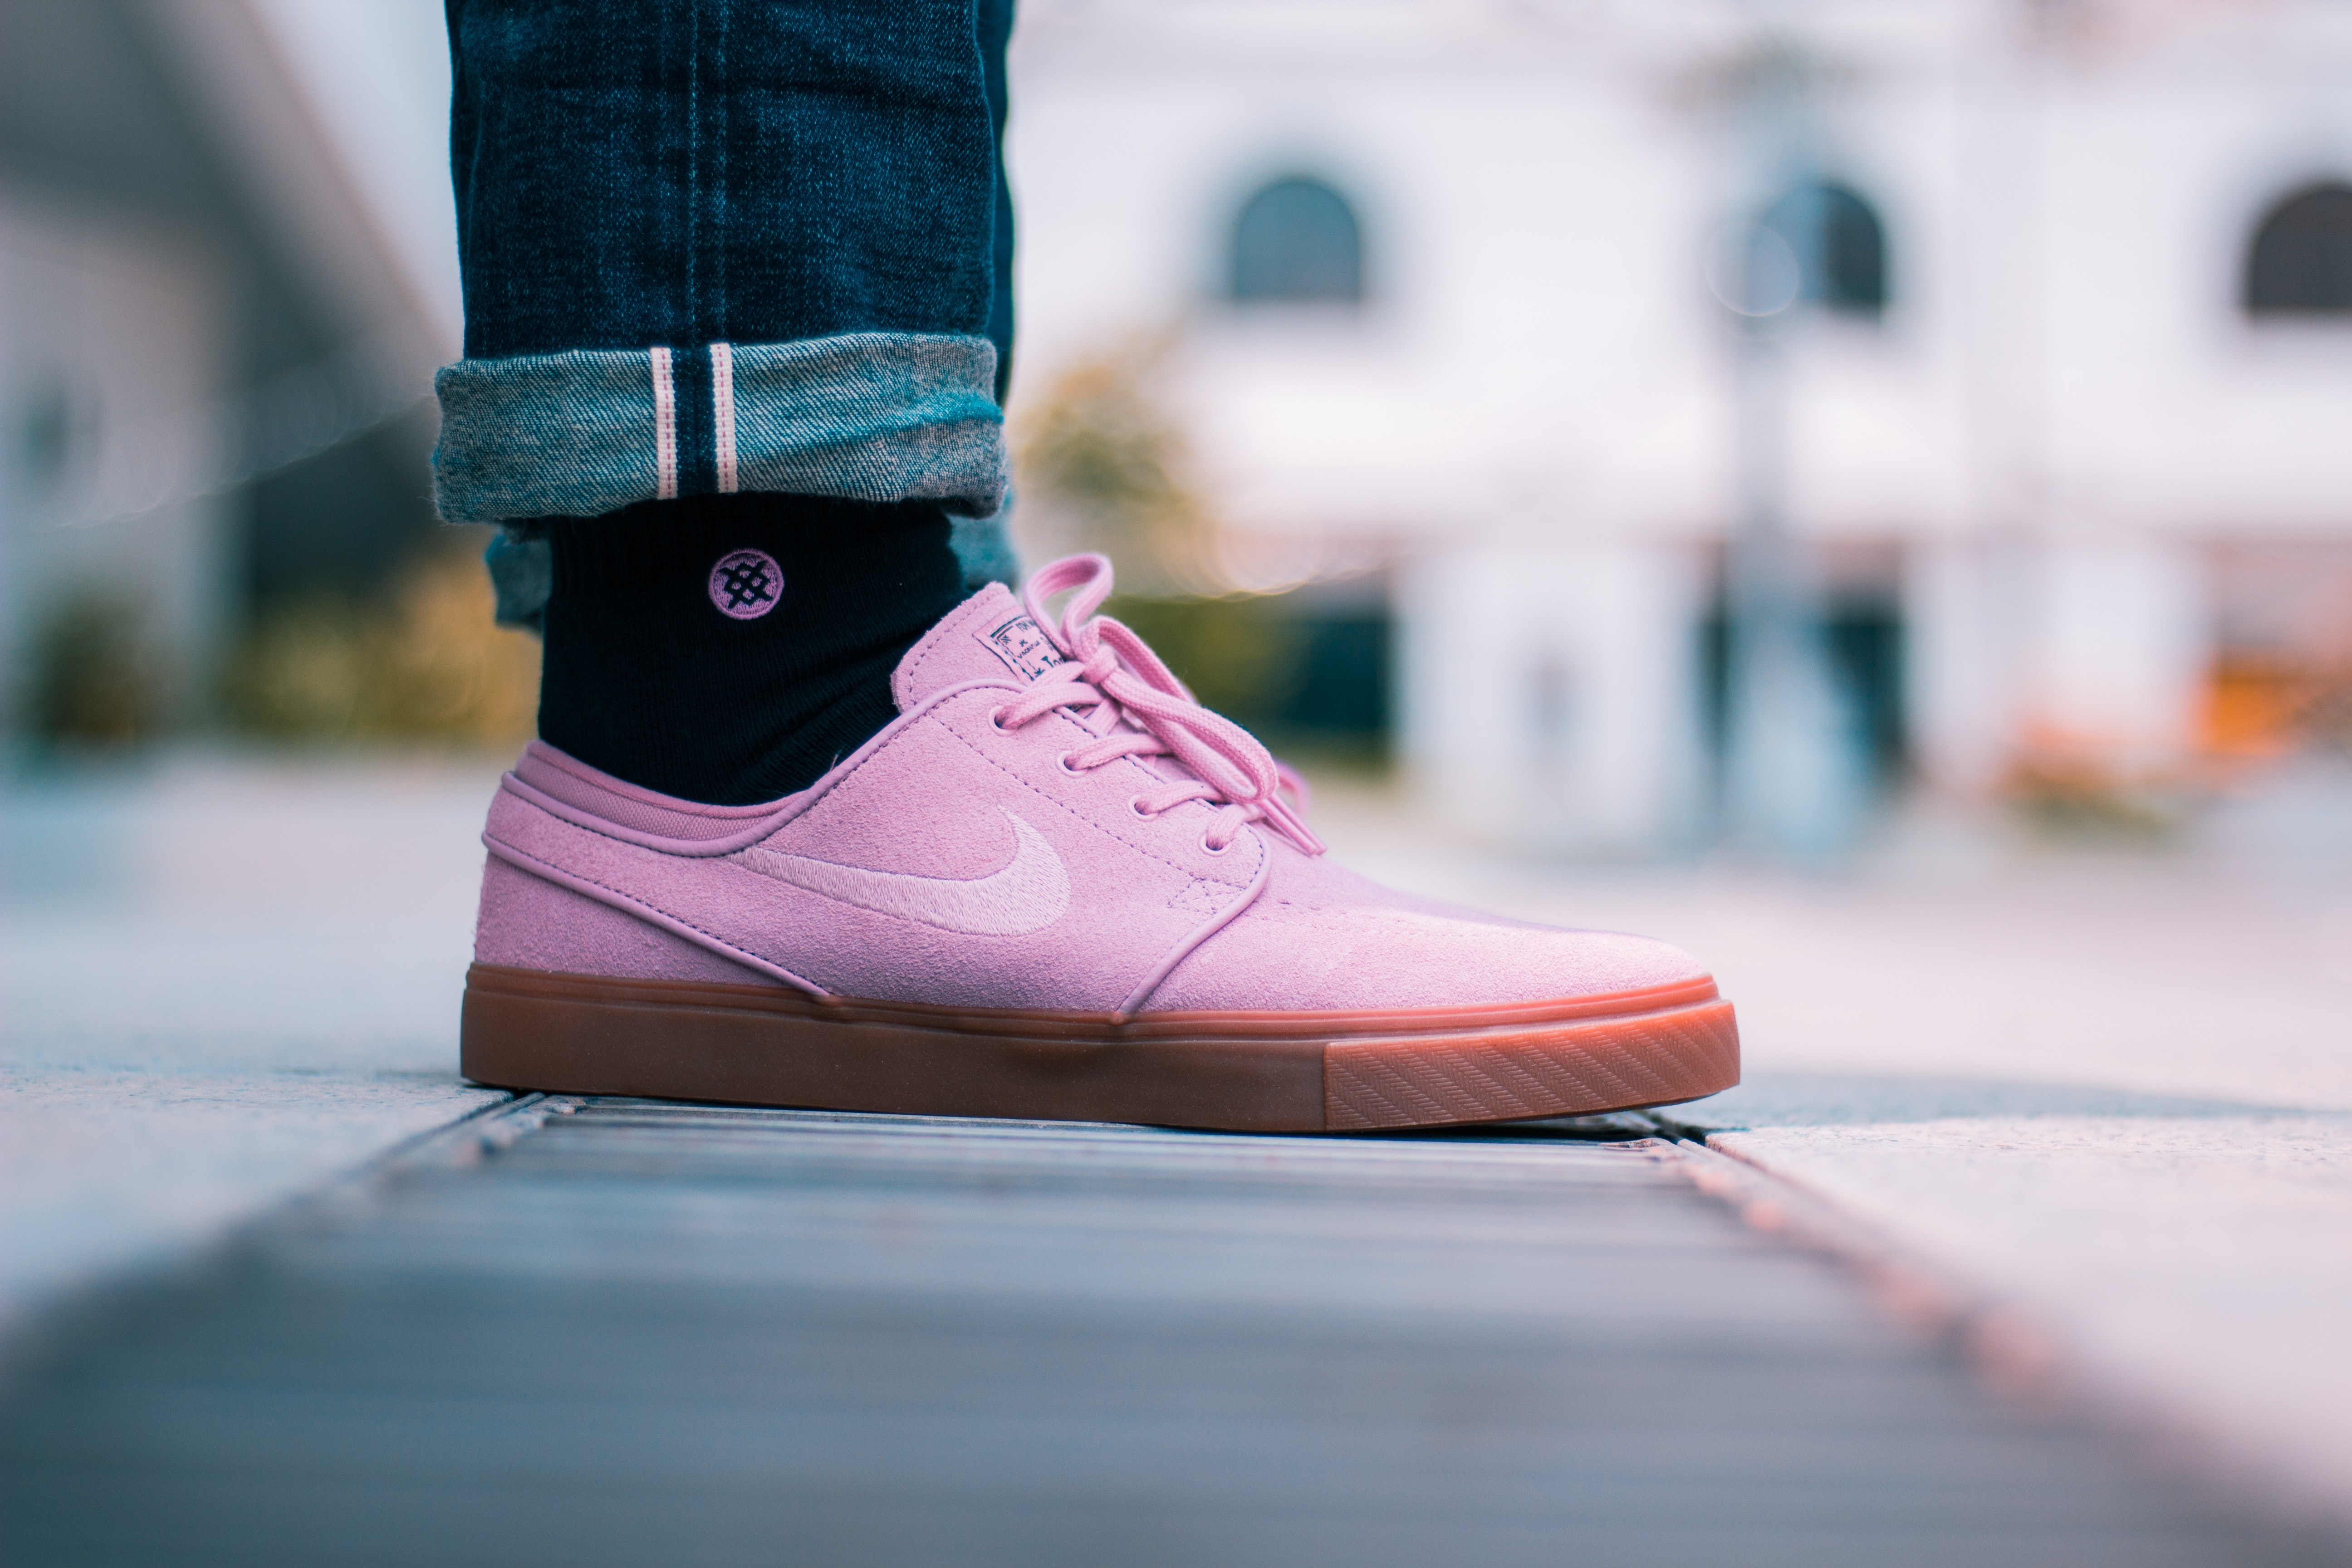 Selective focus photo of a person wearing pink Nike low-top sneakers